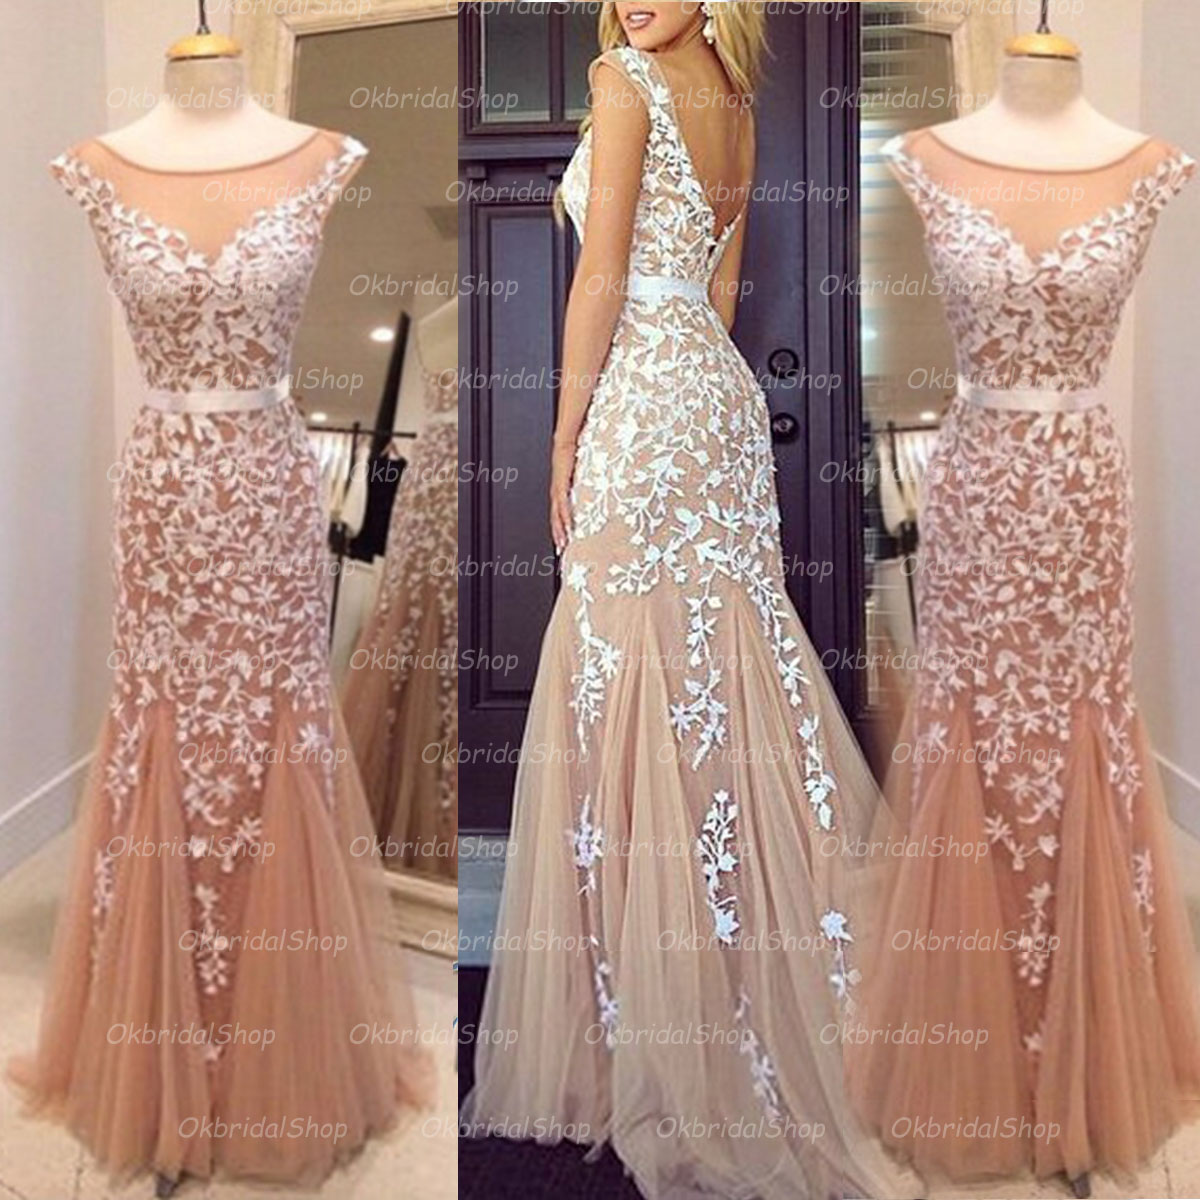 Lace prom dresses long